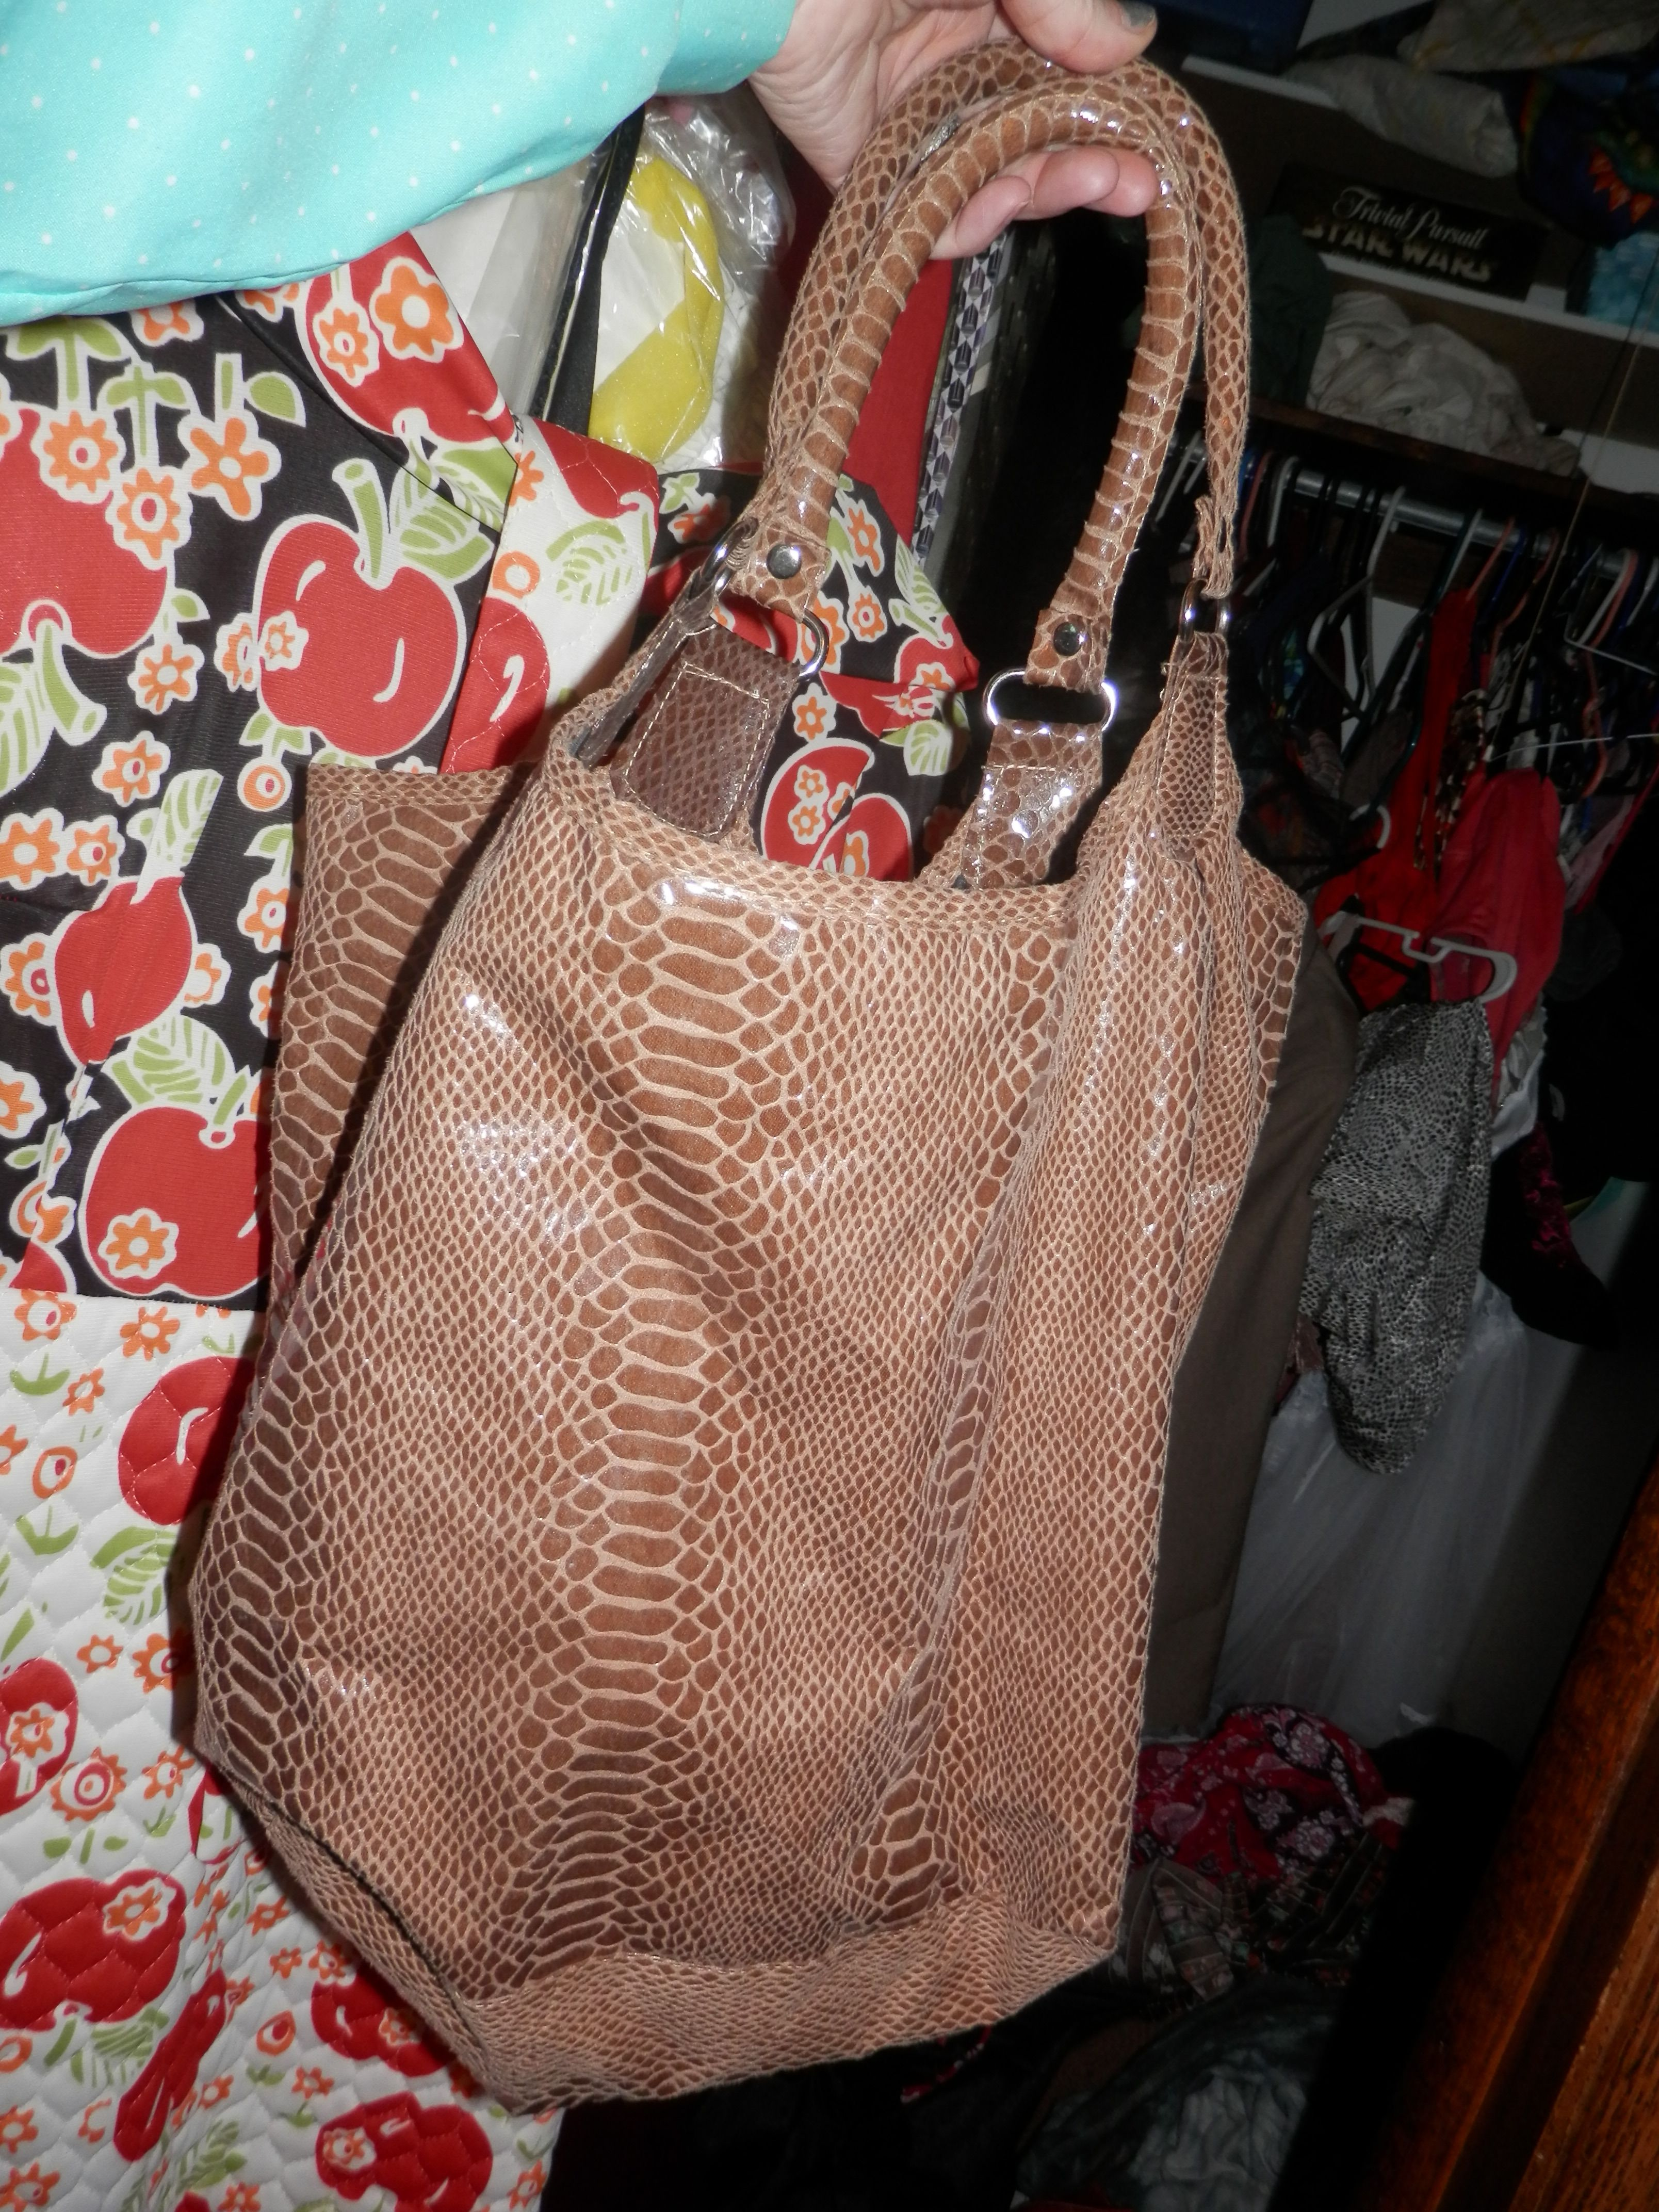 My snakeskin slouchy purse. Mine was free and is cuter than the expensive equivalent pictured b4 this photograph.